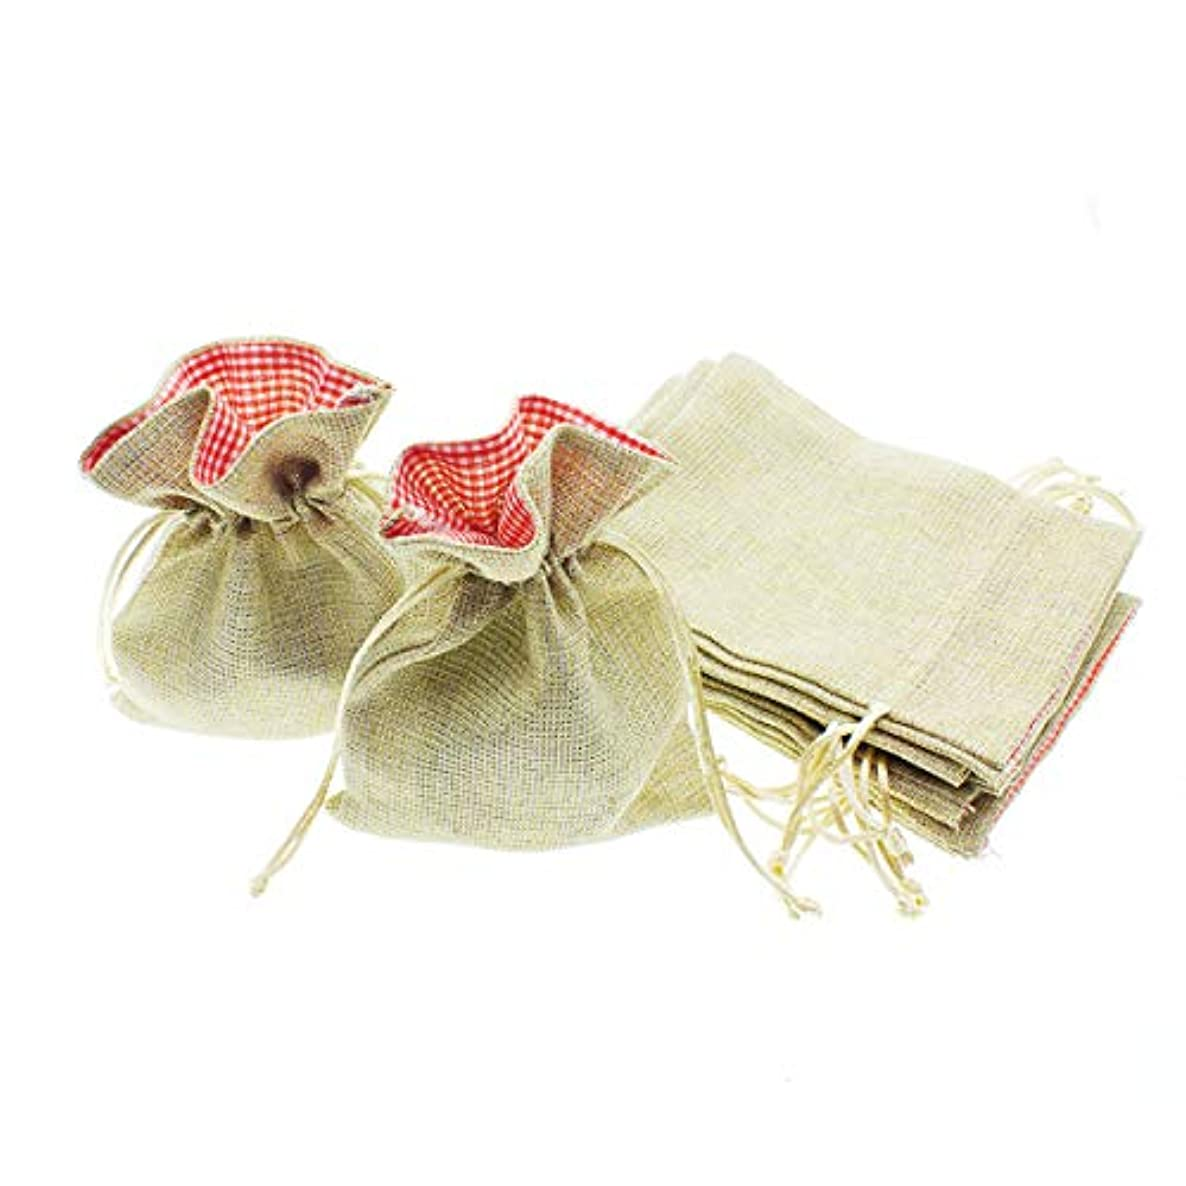 """Linen and Bags 5"""" x 7"""" Linen Drawstring Party Favor Bags with  Buffalo Plaid Opening Craft Pouches Sparkle 24 Pack"""